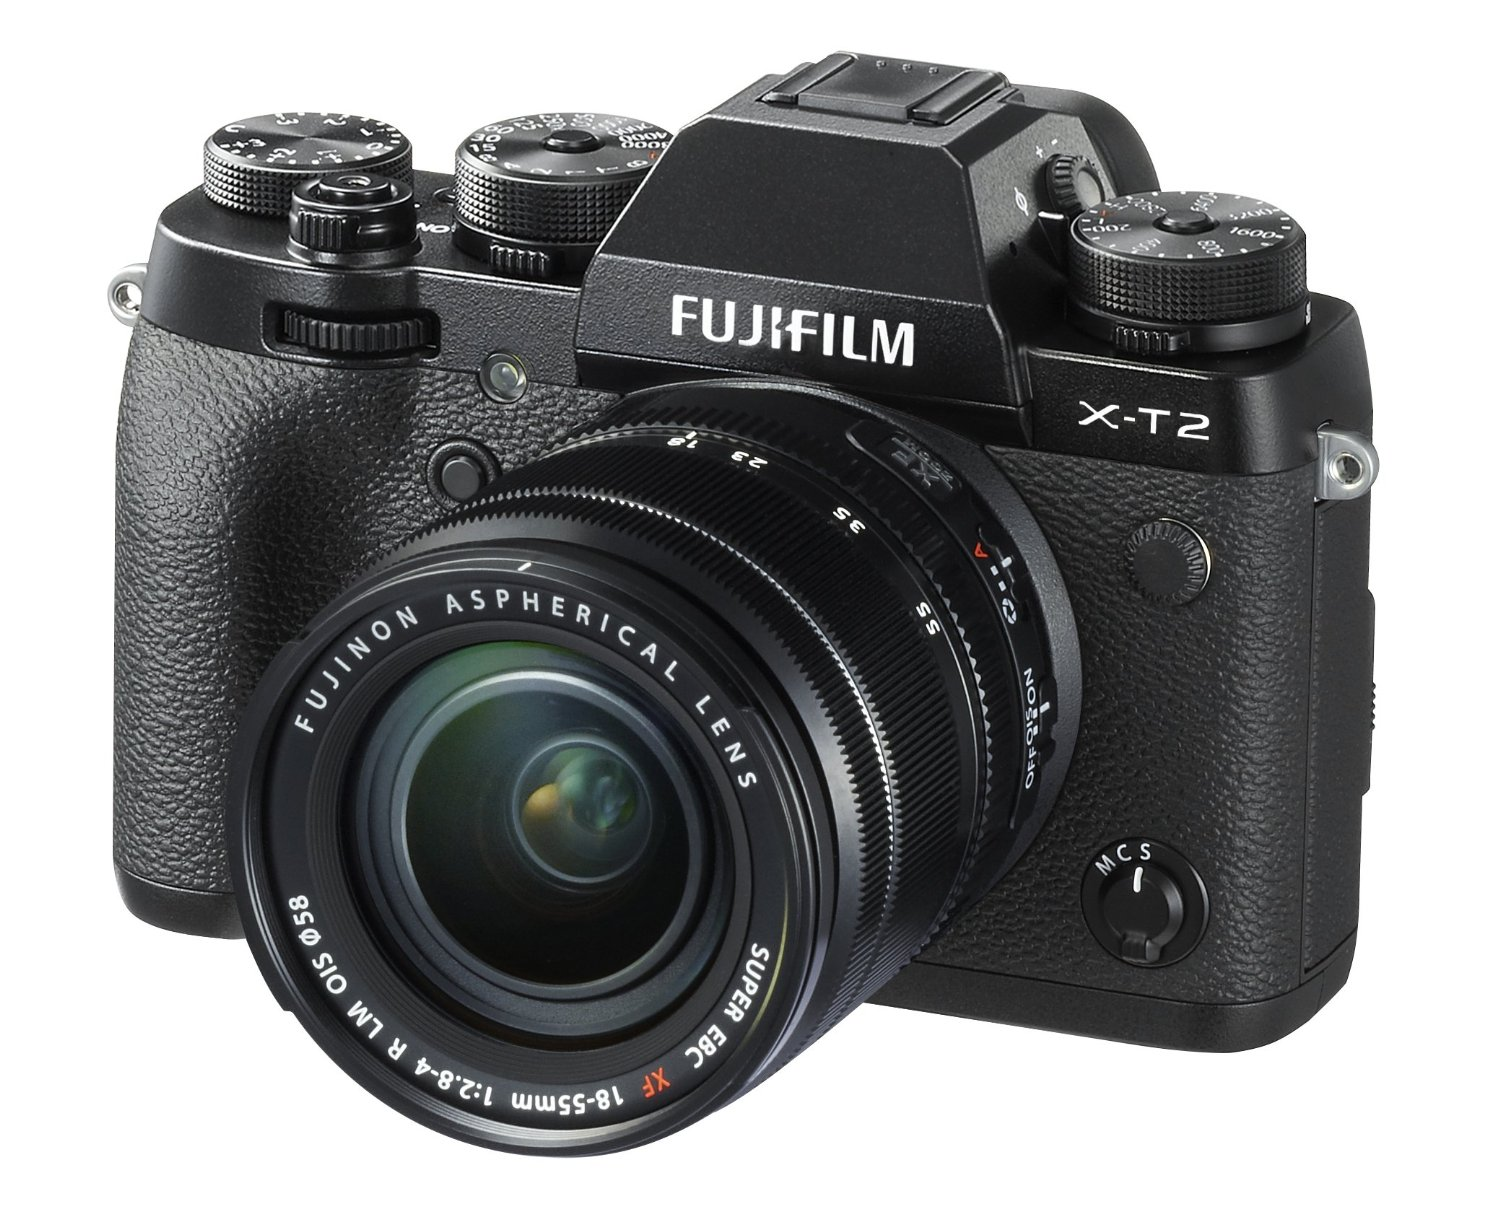 Fujifilm X-T2 with 18-55mm lens deal